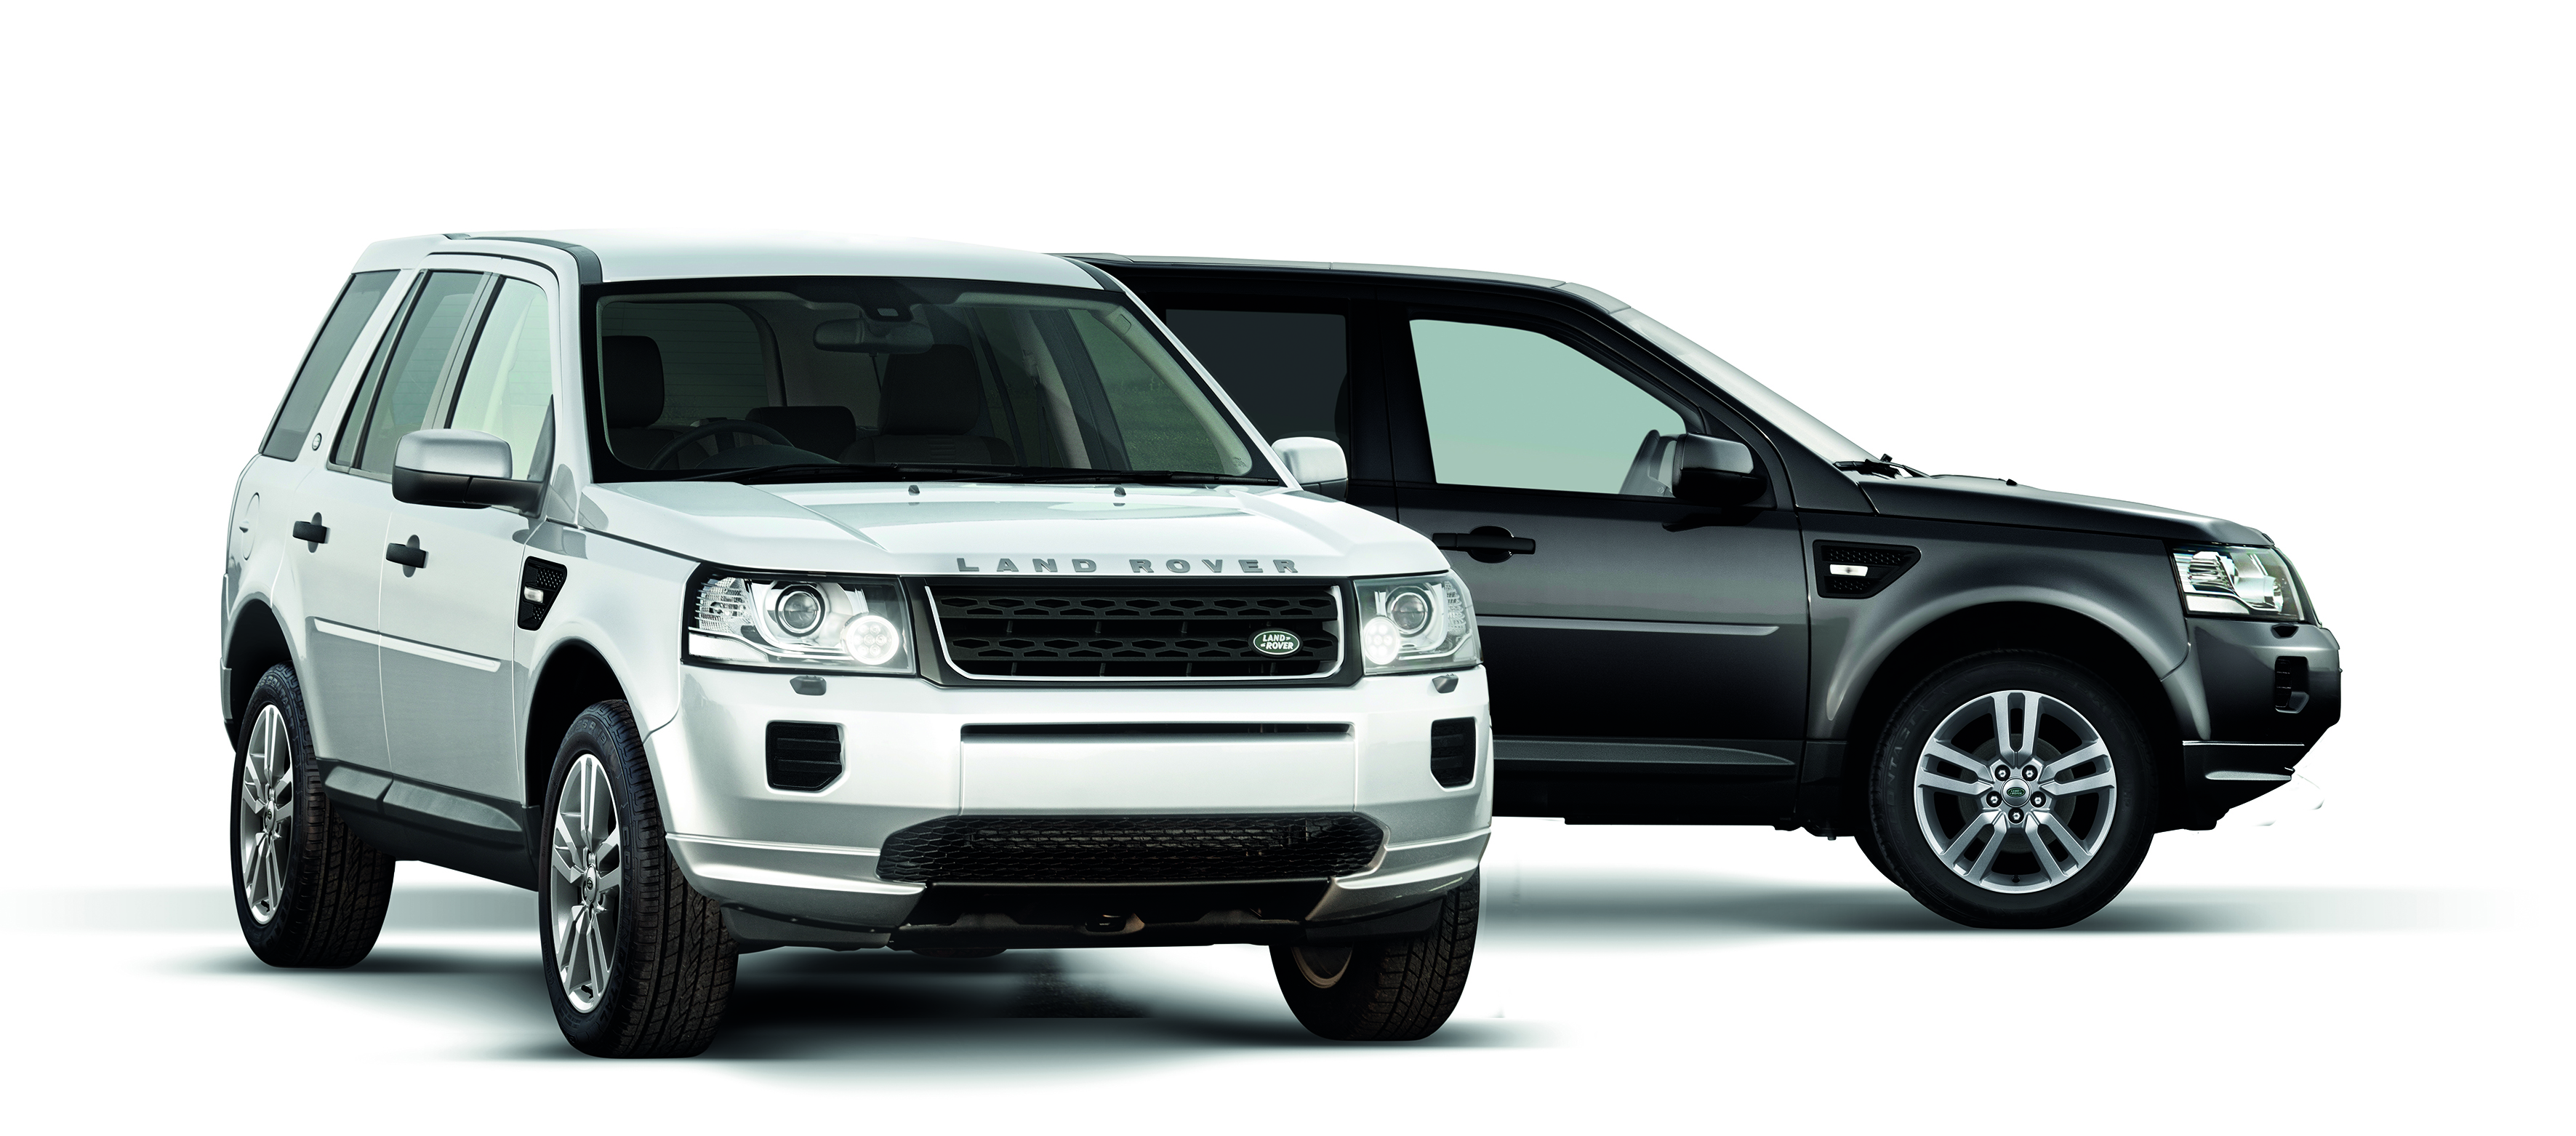 Land Rover Freelander Black &amp; White Edition